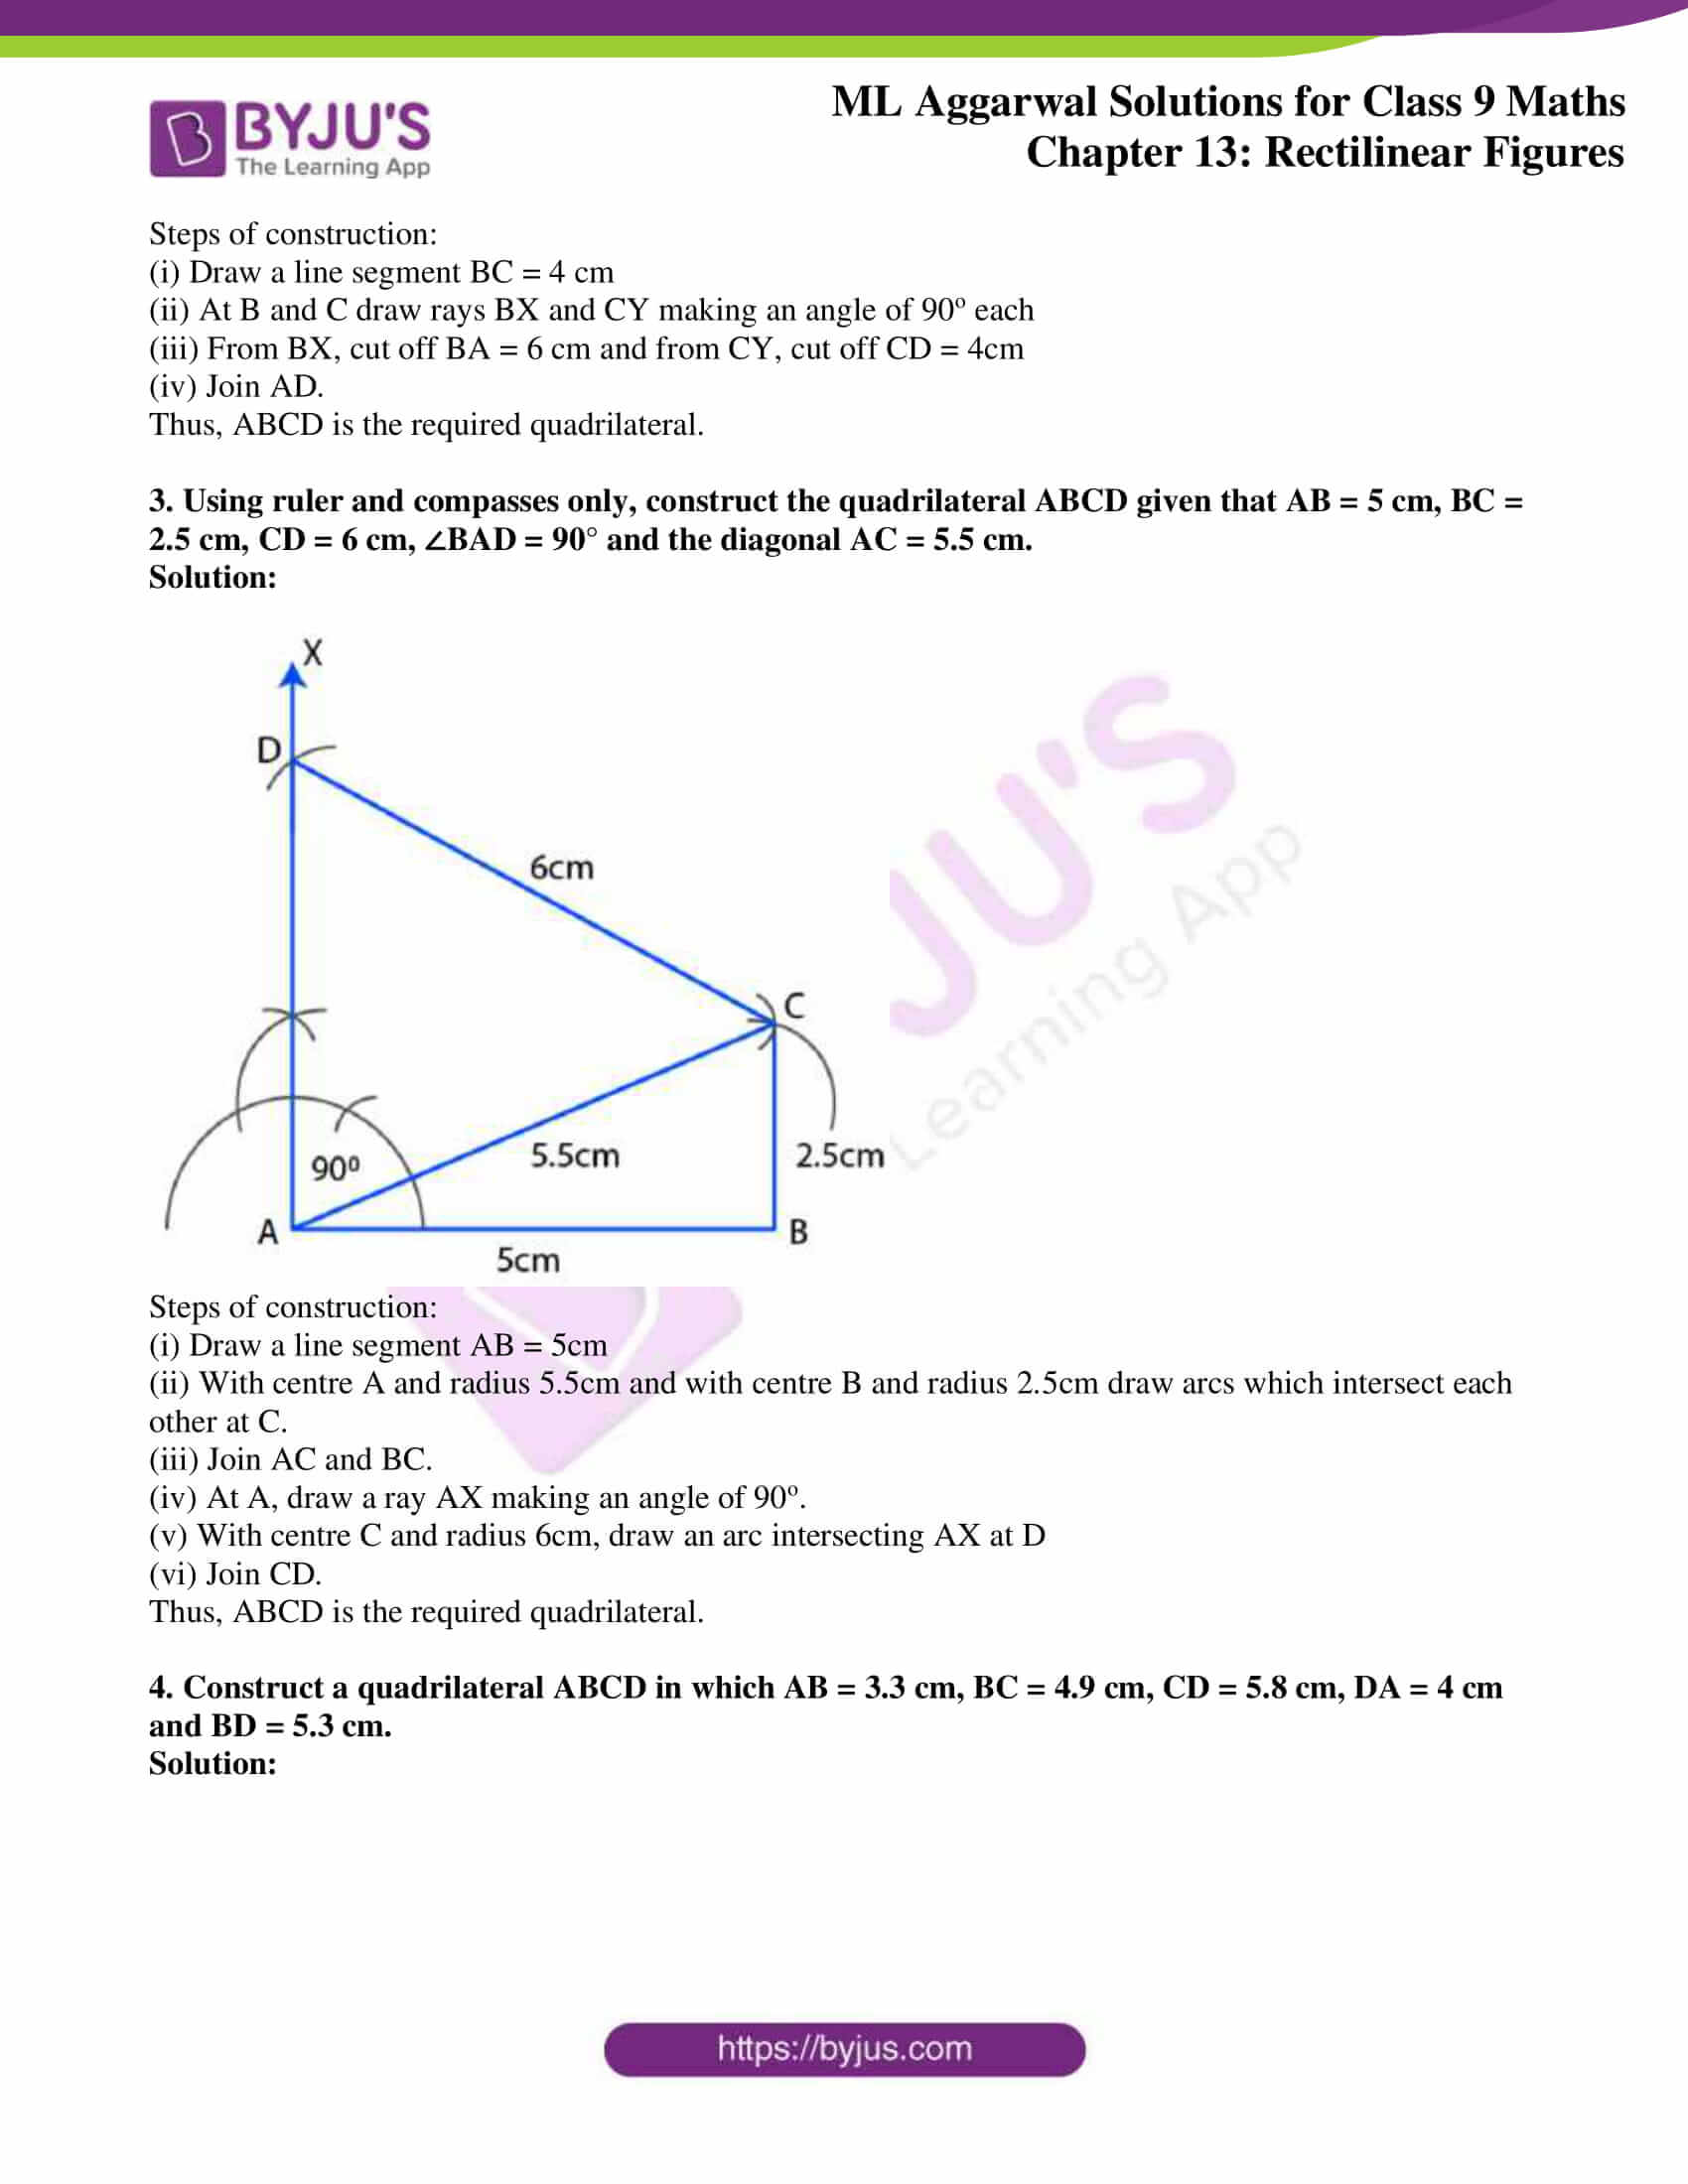 ml aggarwal solutions for class 9 maths chapter 13 25